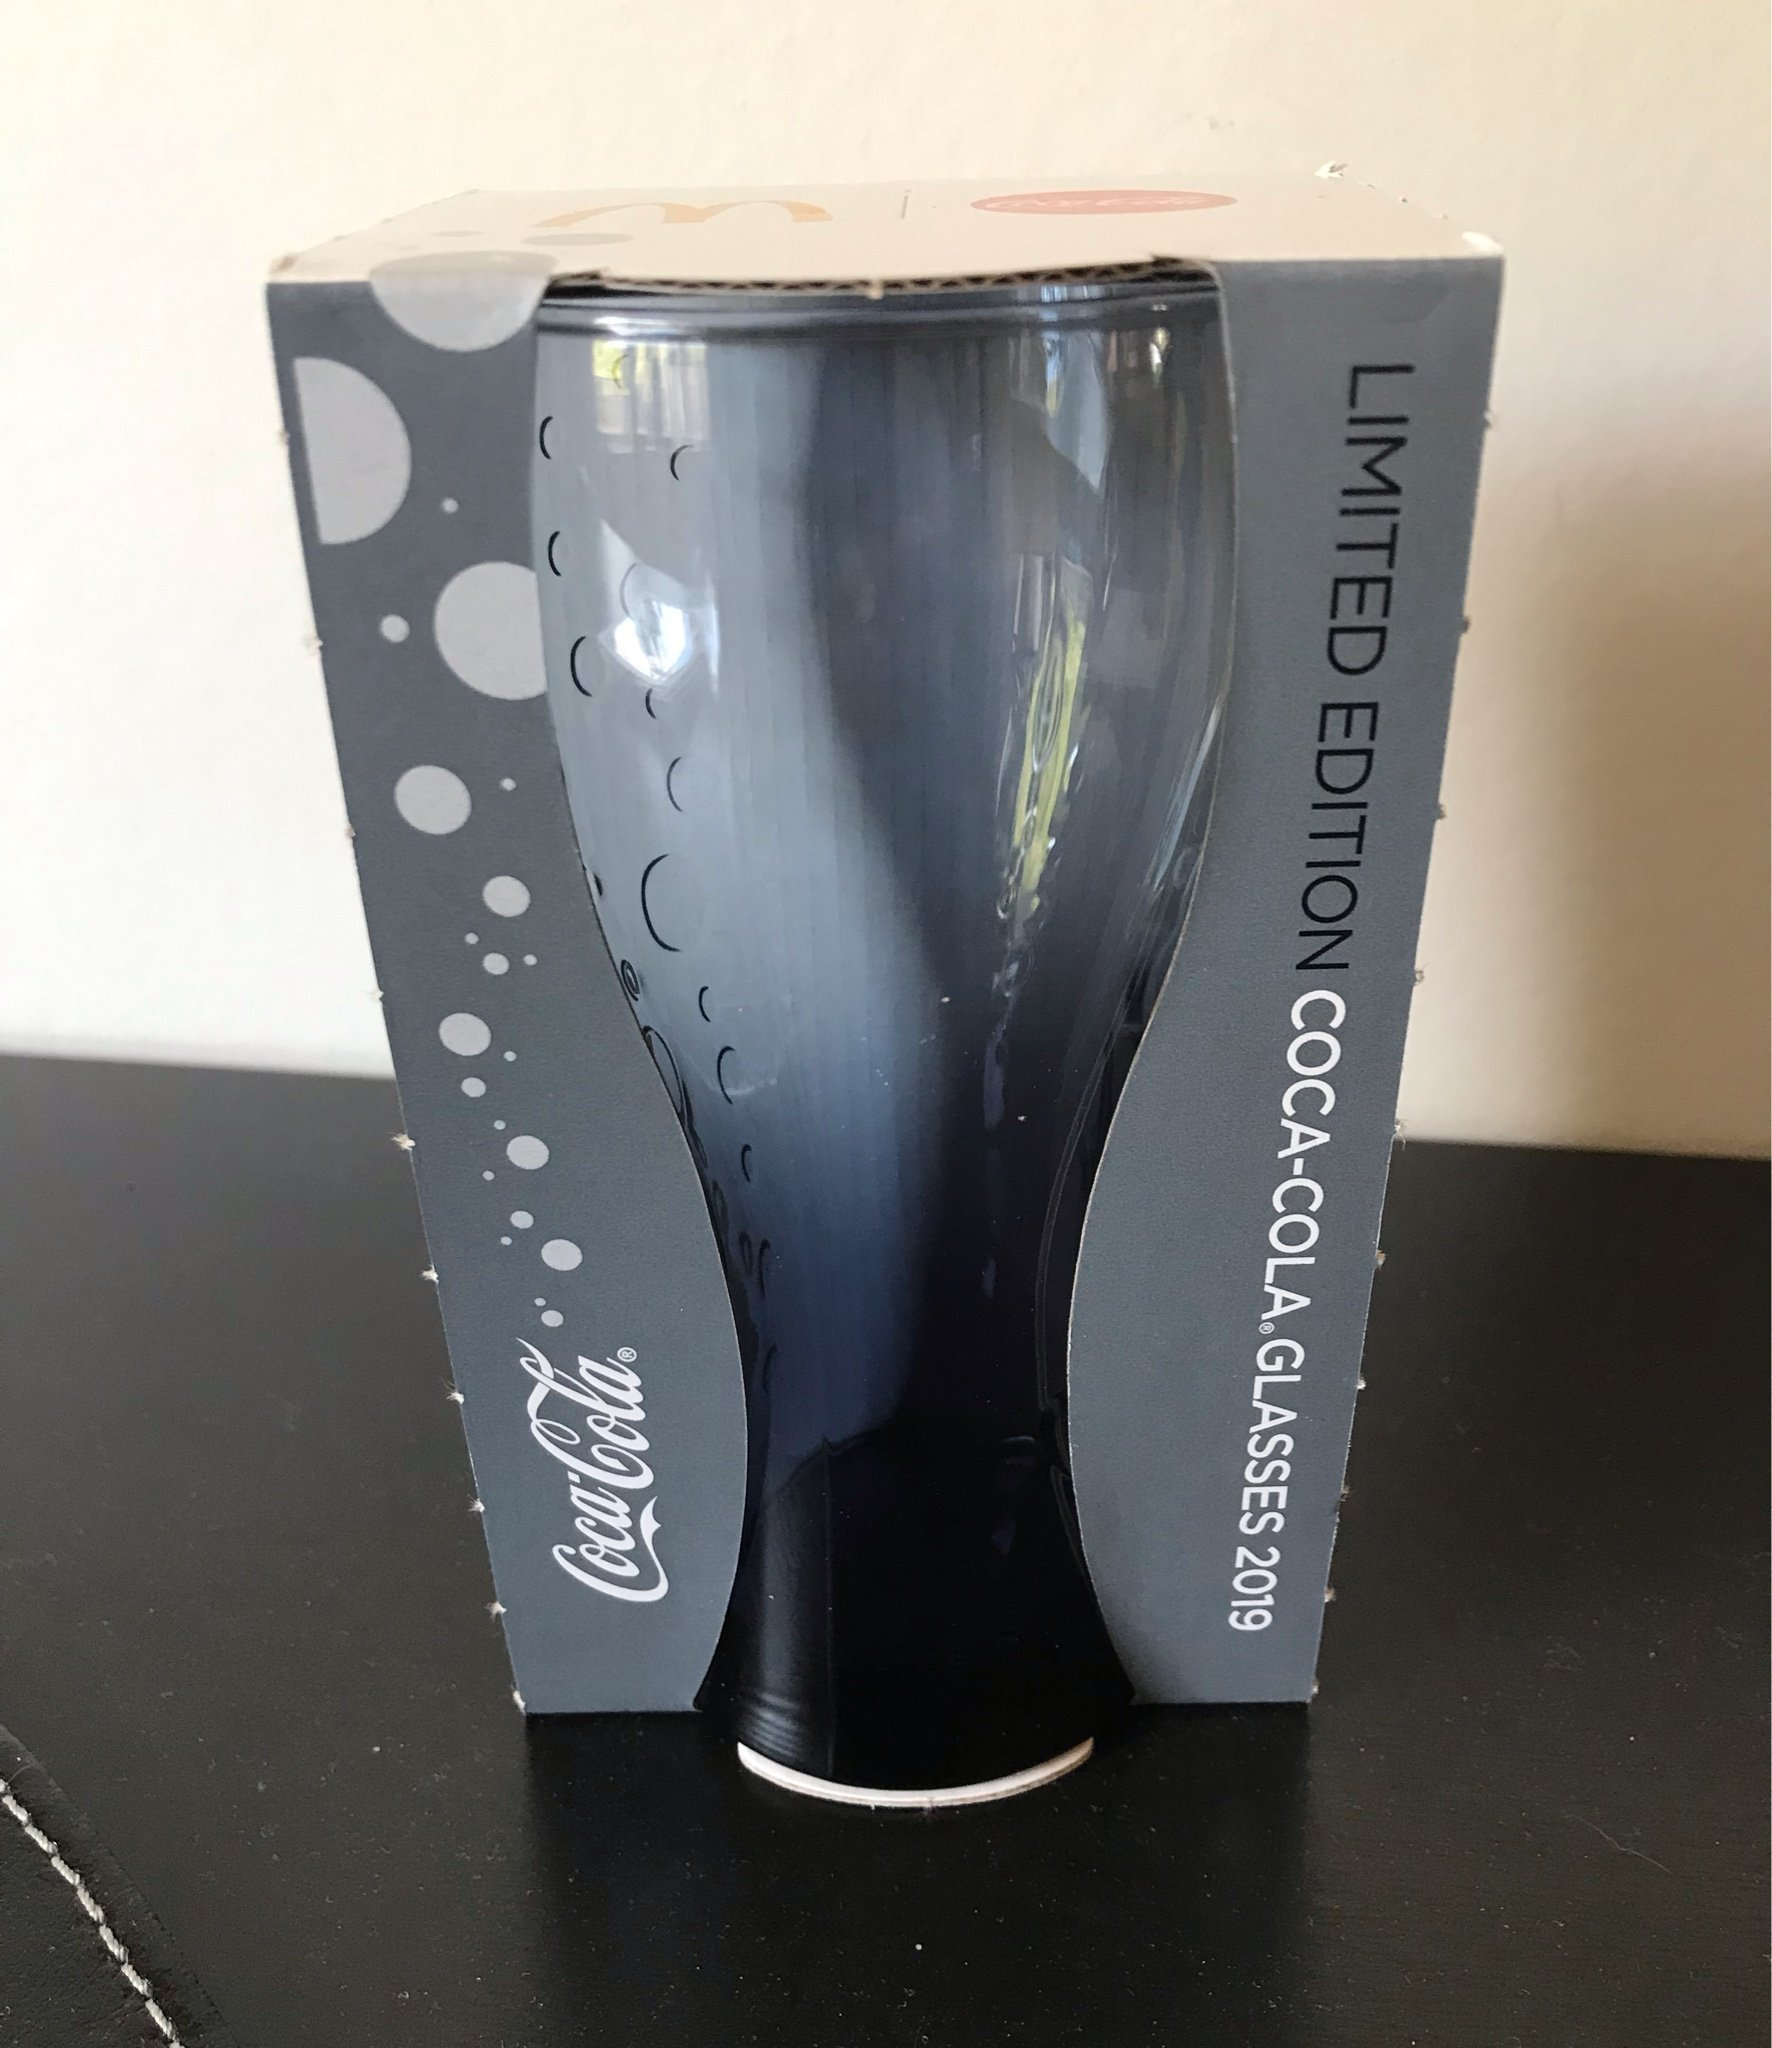 Coca-Cola glas McDonalds 2019. Svart. Limited Edition.